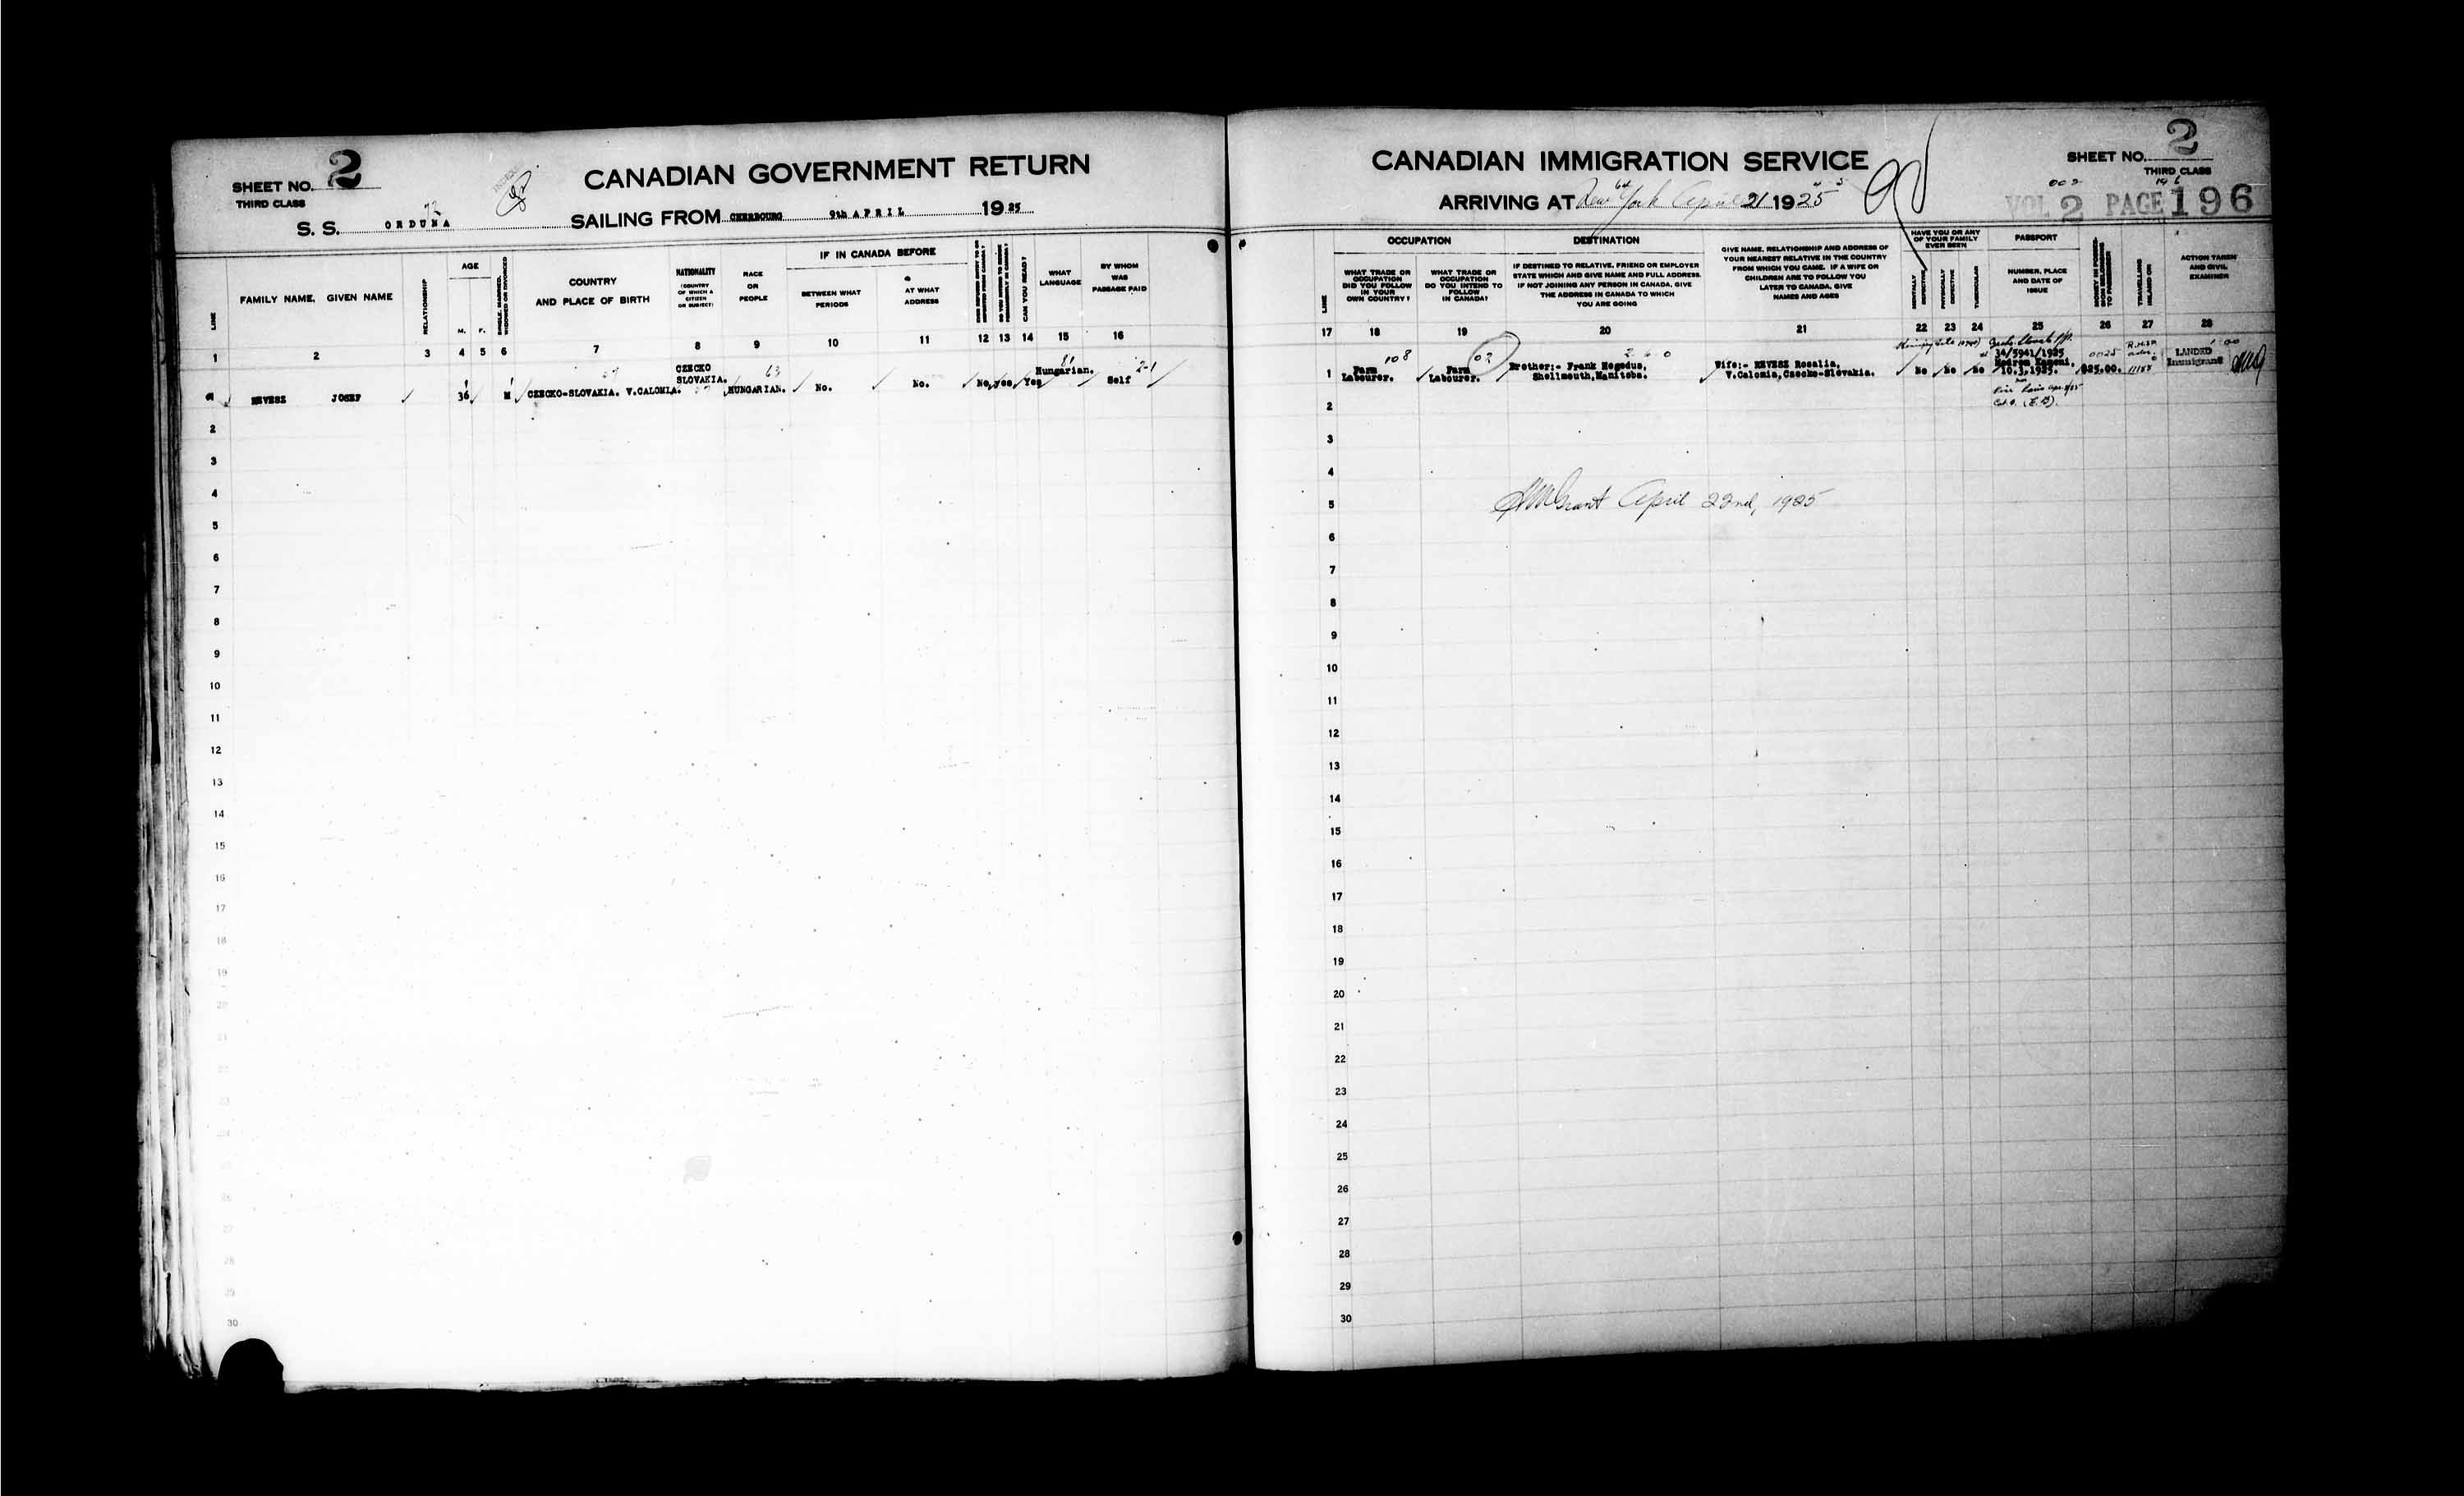 Title: Passenger Lists: New York (1925-1935) - Mikan Number: 161343 - Microform: t-14924